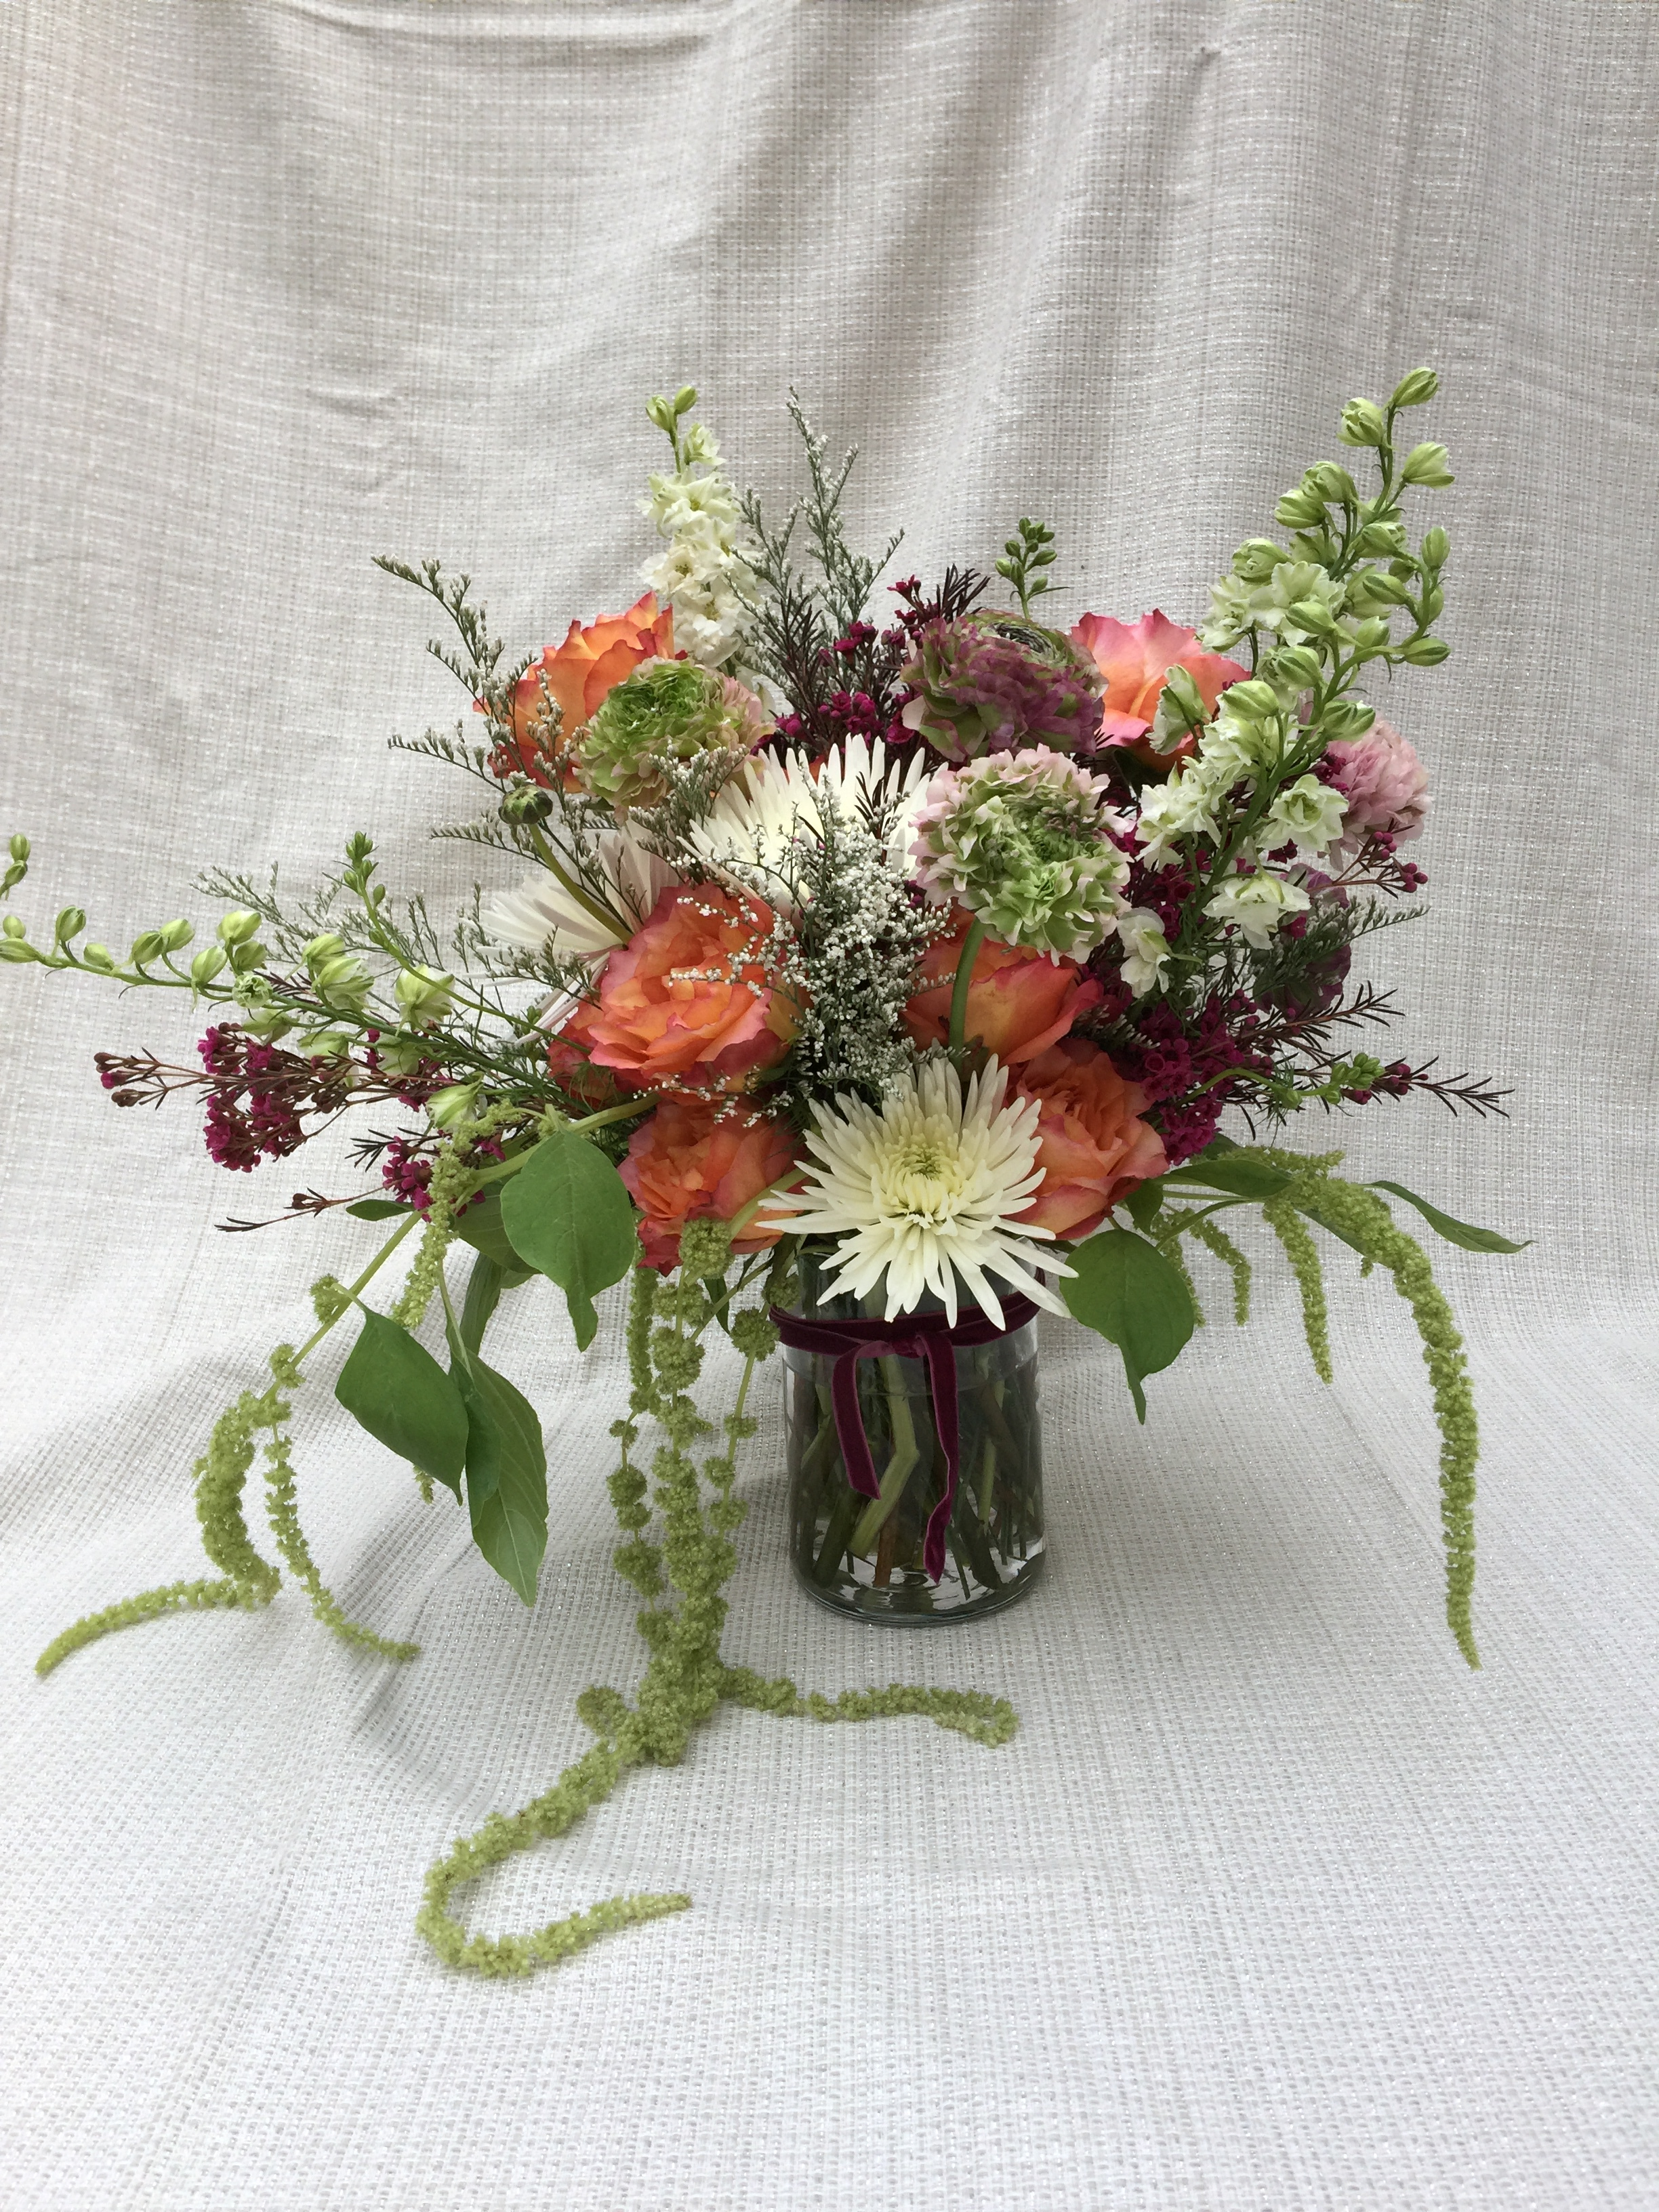 customer said she liked basic flowers... I don't know what basic means ... turns out she loved it!